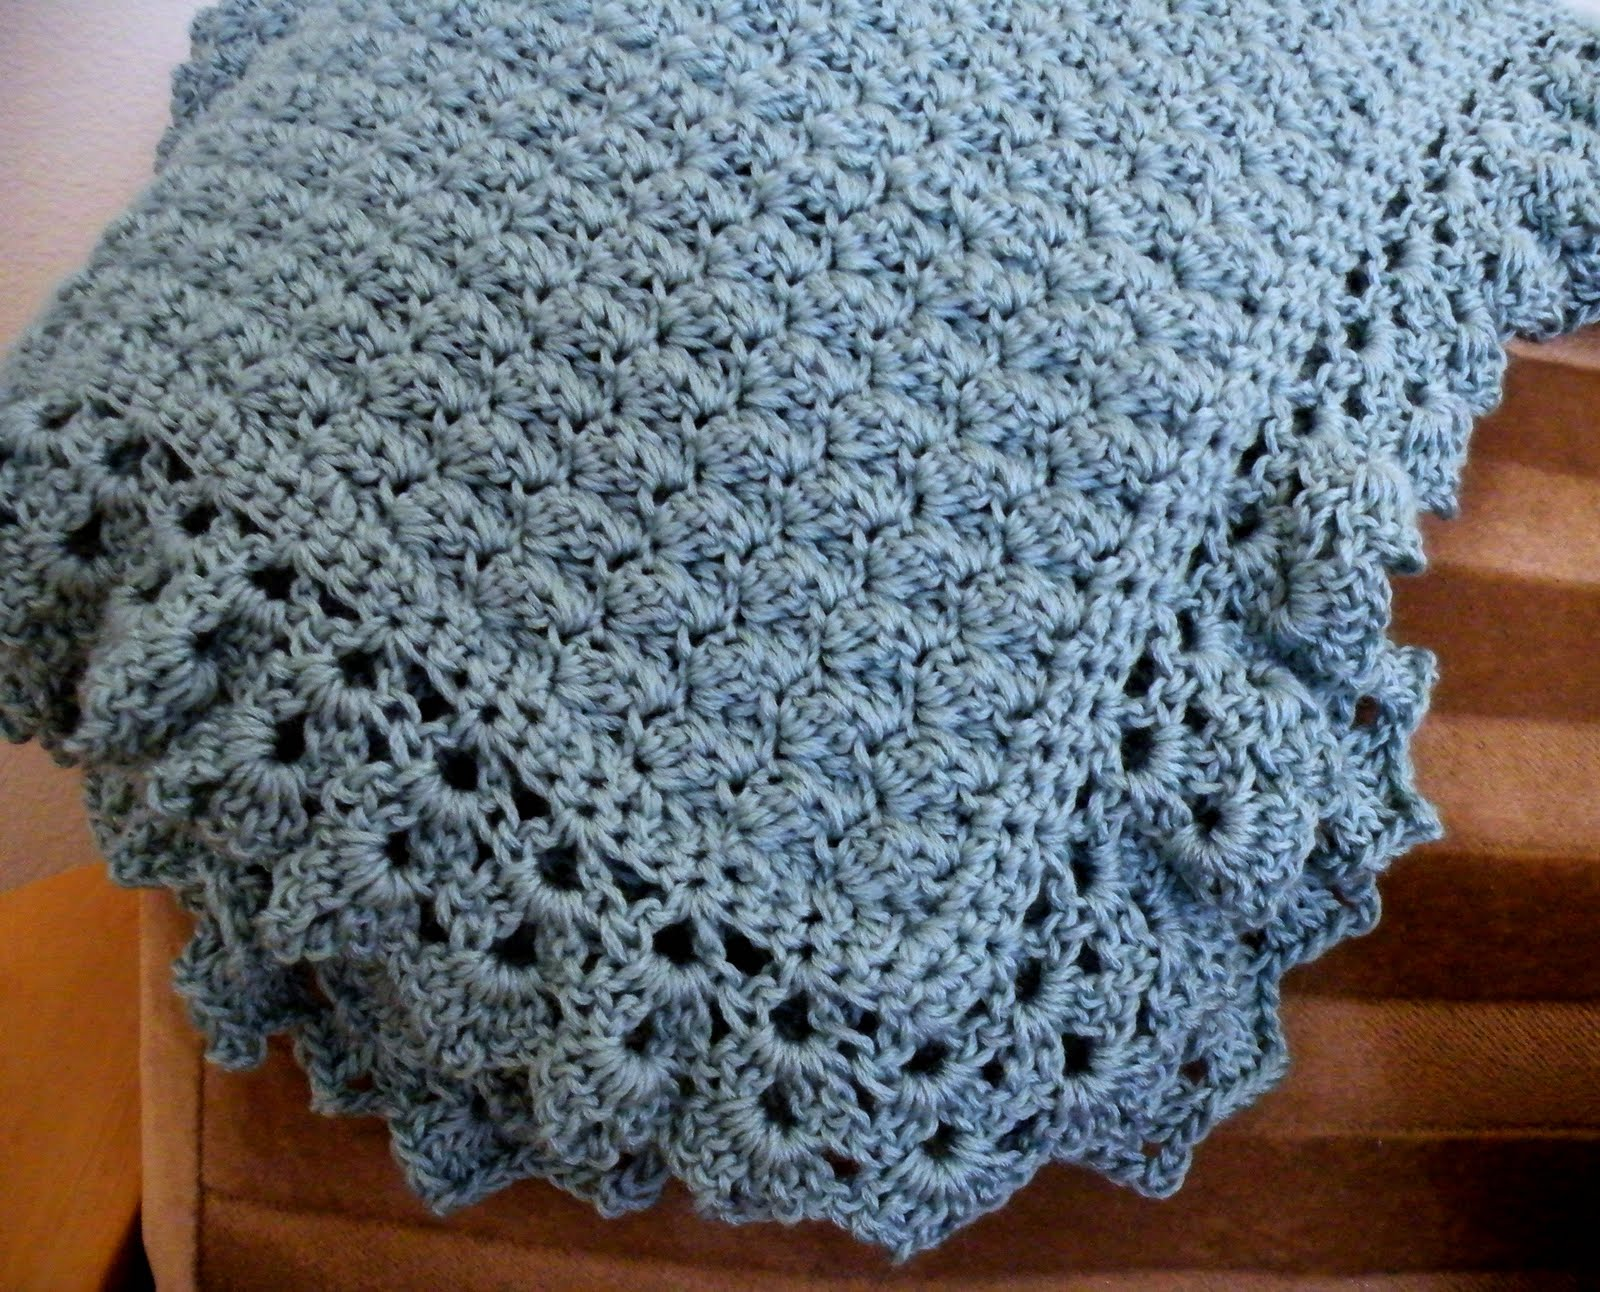 Crochet Patterns Baby Quilts : Little Scraps of Happiness: Crochet Baby Blanket Pattern